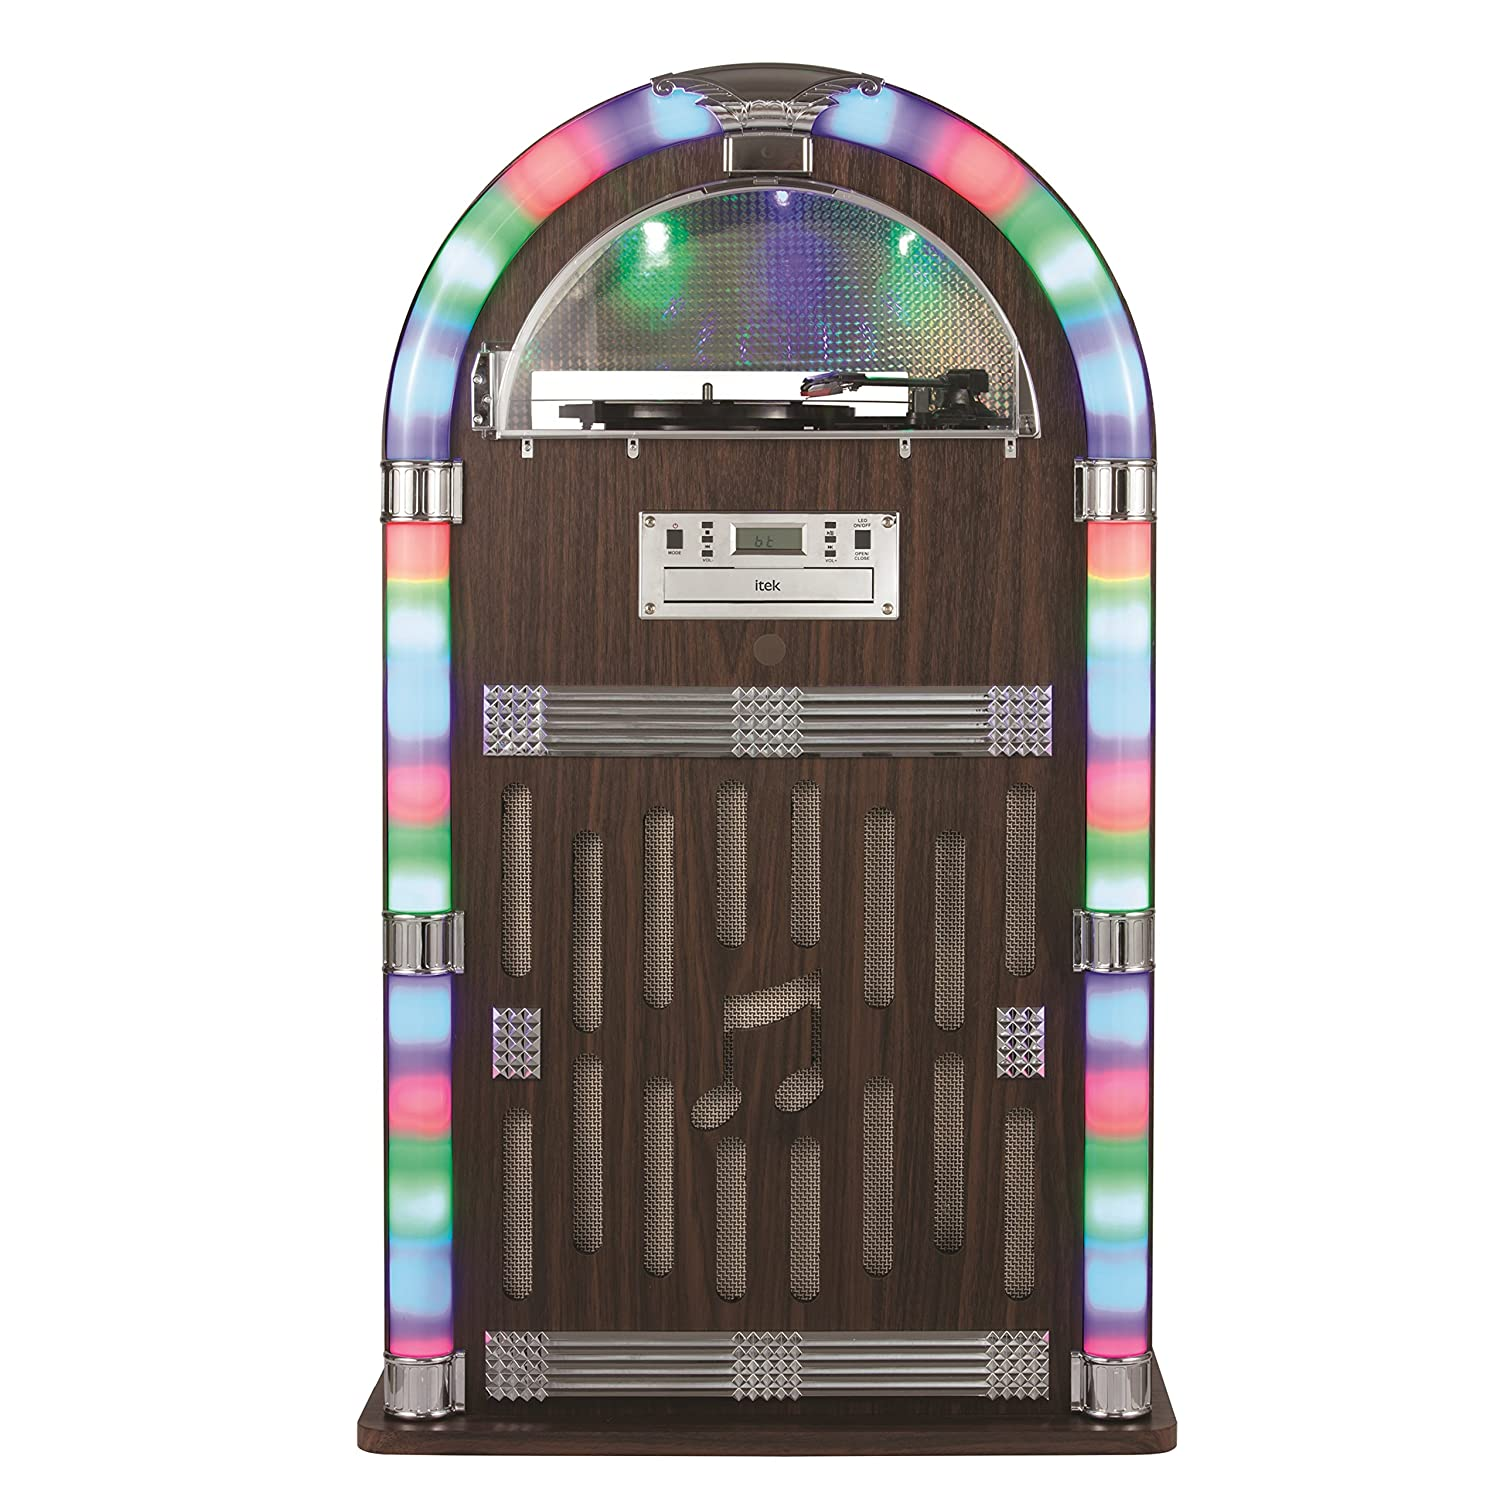 iTek I60021 Floorstanding Jukebox with Record Player, Bluetooth  Connectivity, FM Radio, CD Player and Colour-Changing LED Lights, Remote  Control